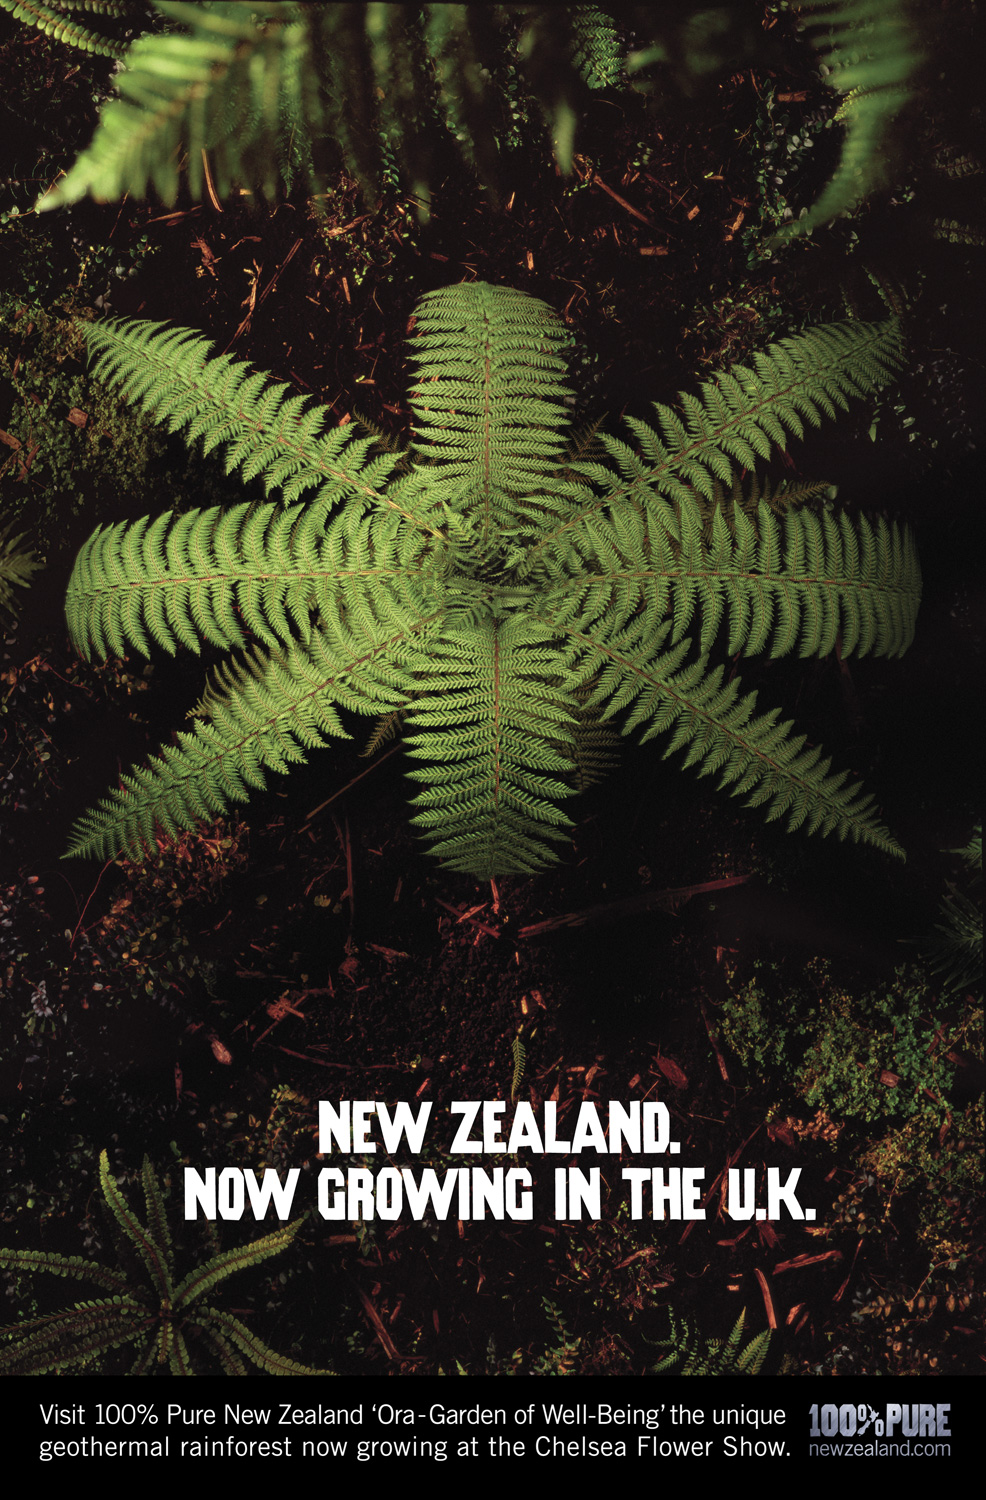 Poster campaign - Tourism New Zealand